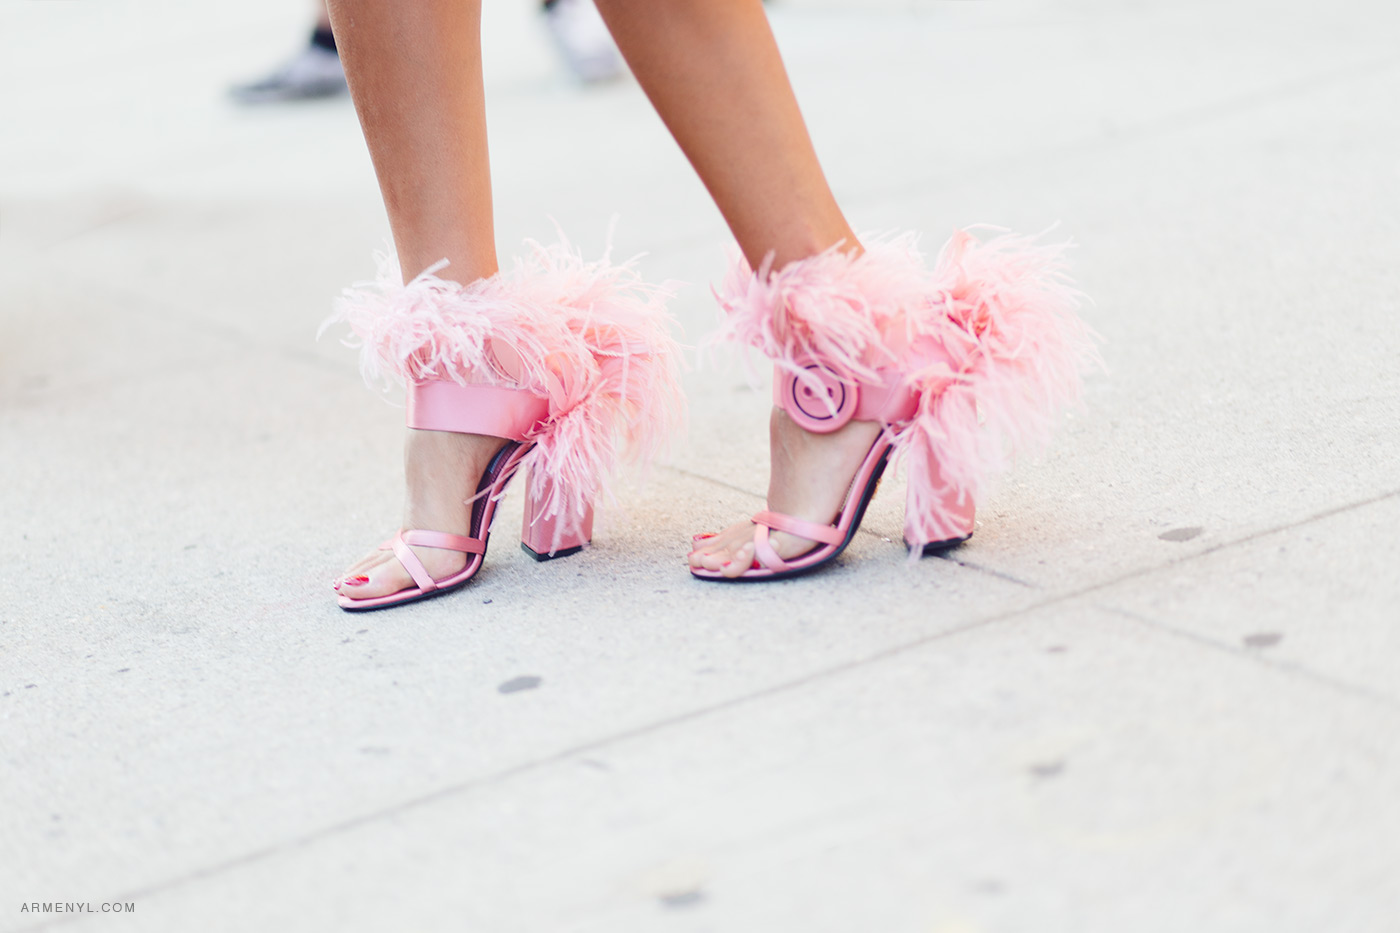 DVF Street Style New York Fashion Week S/S 2018 photographed by Armenyl